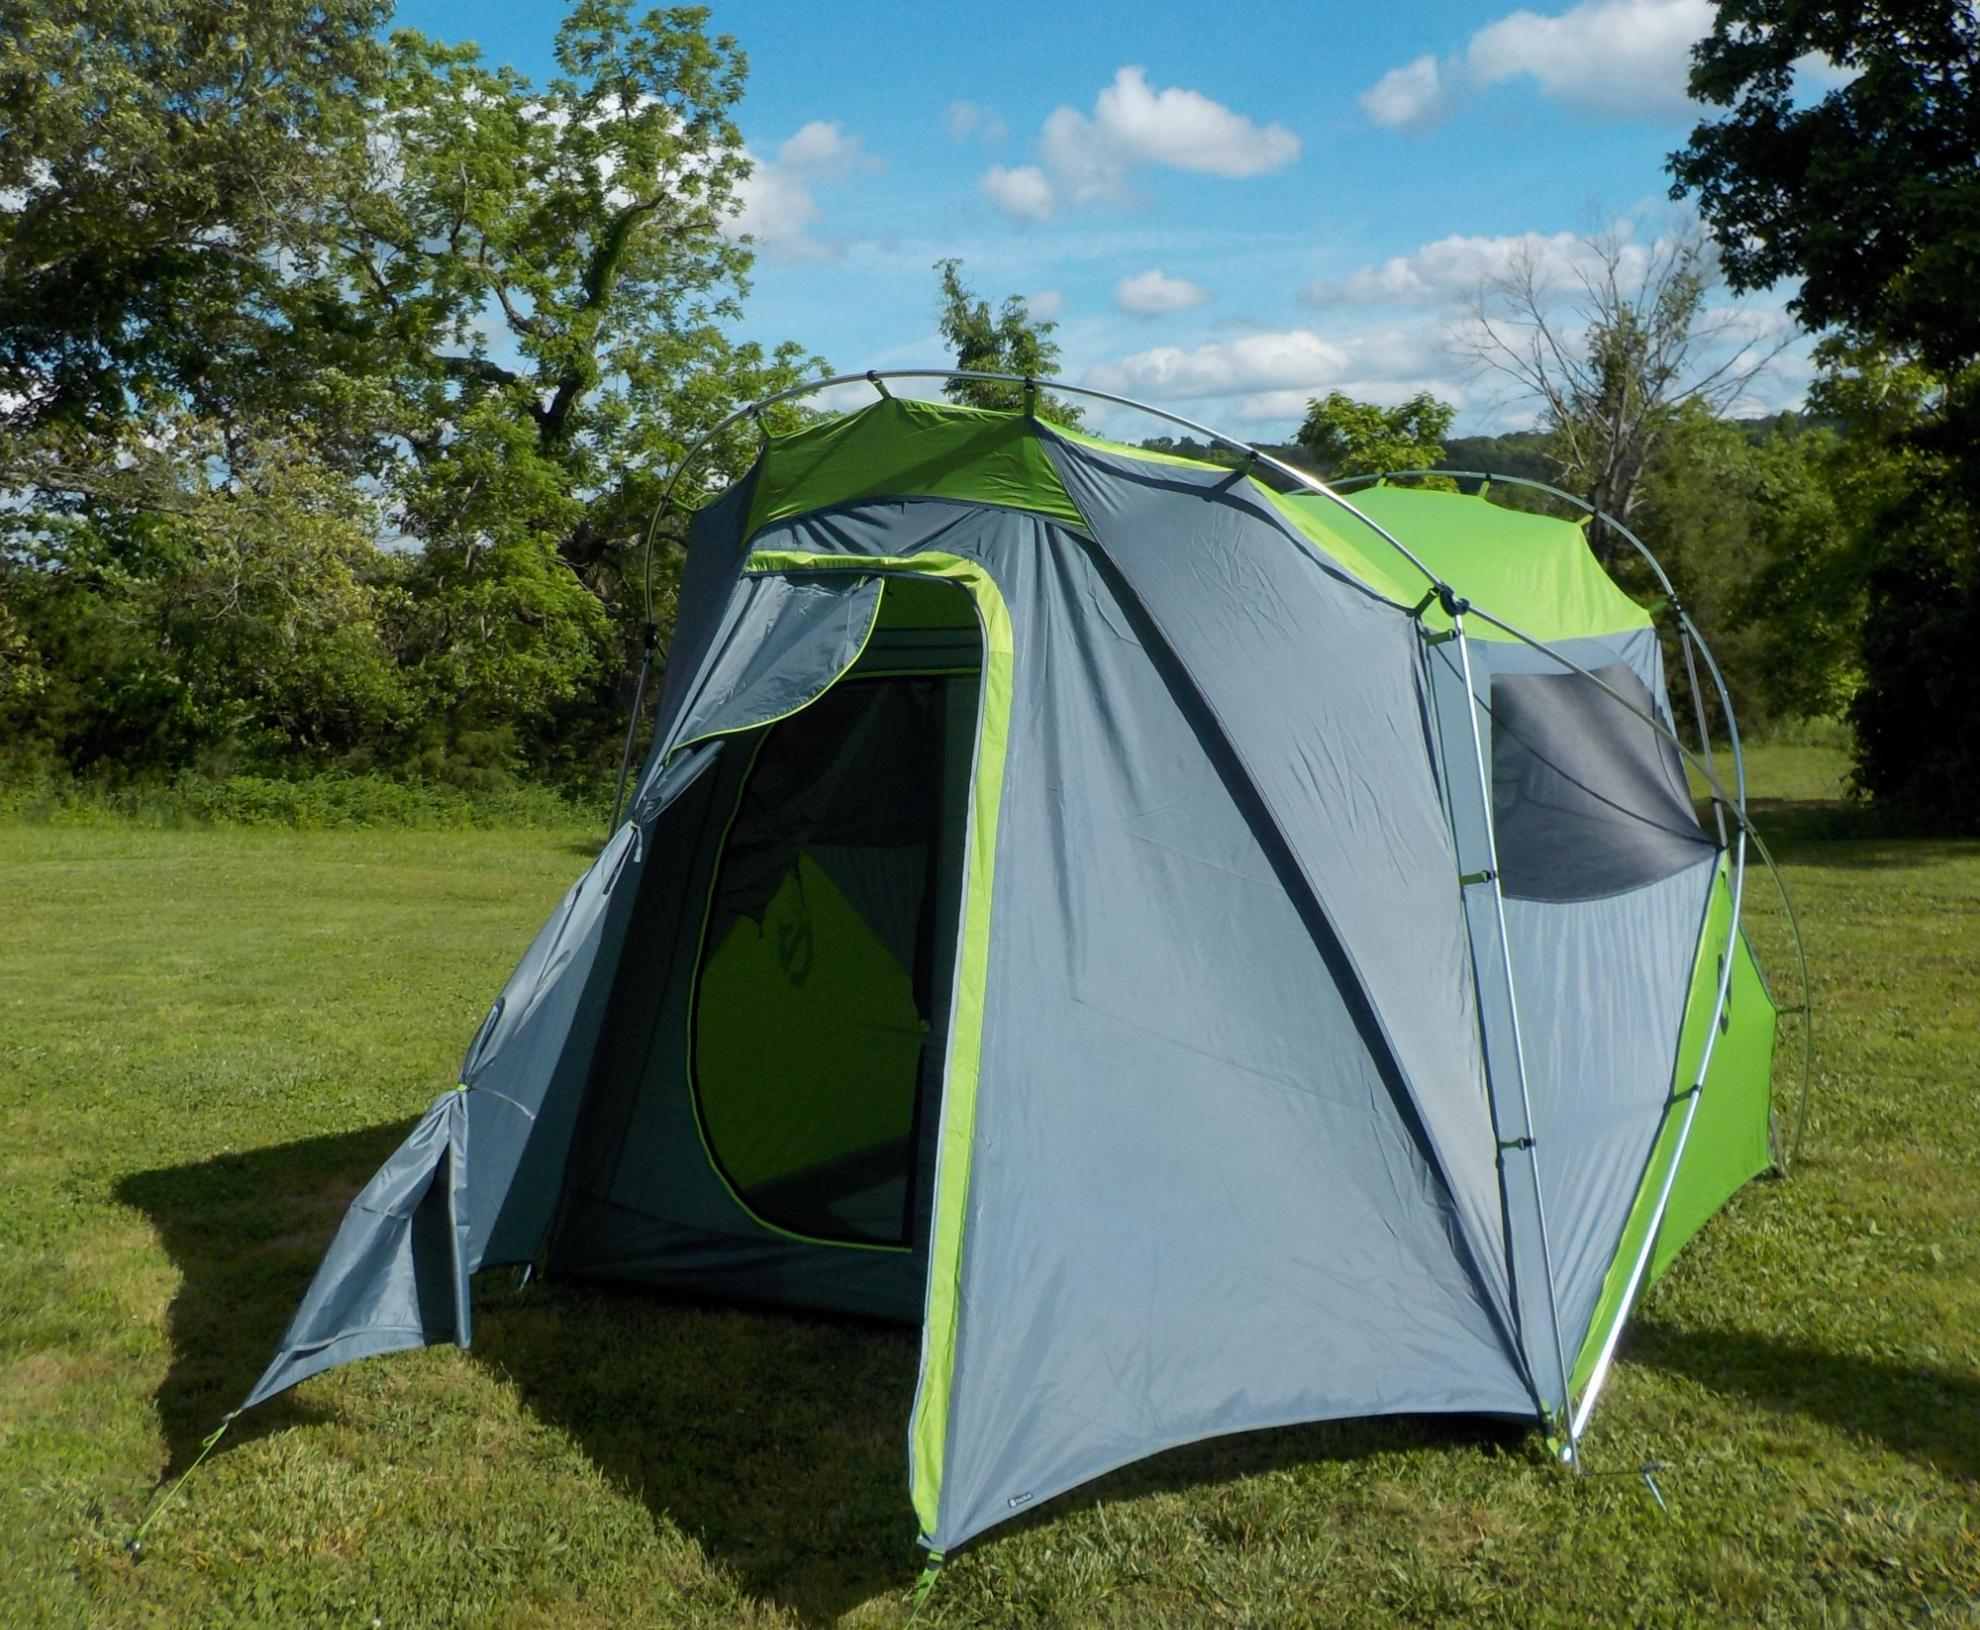 quote ozarkpaddler     : north face bullfrog tent - memphite.com